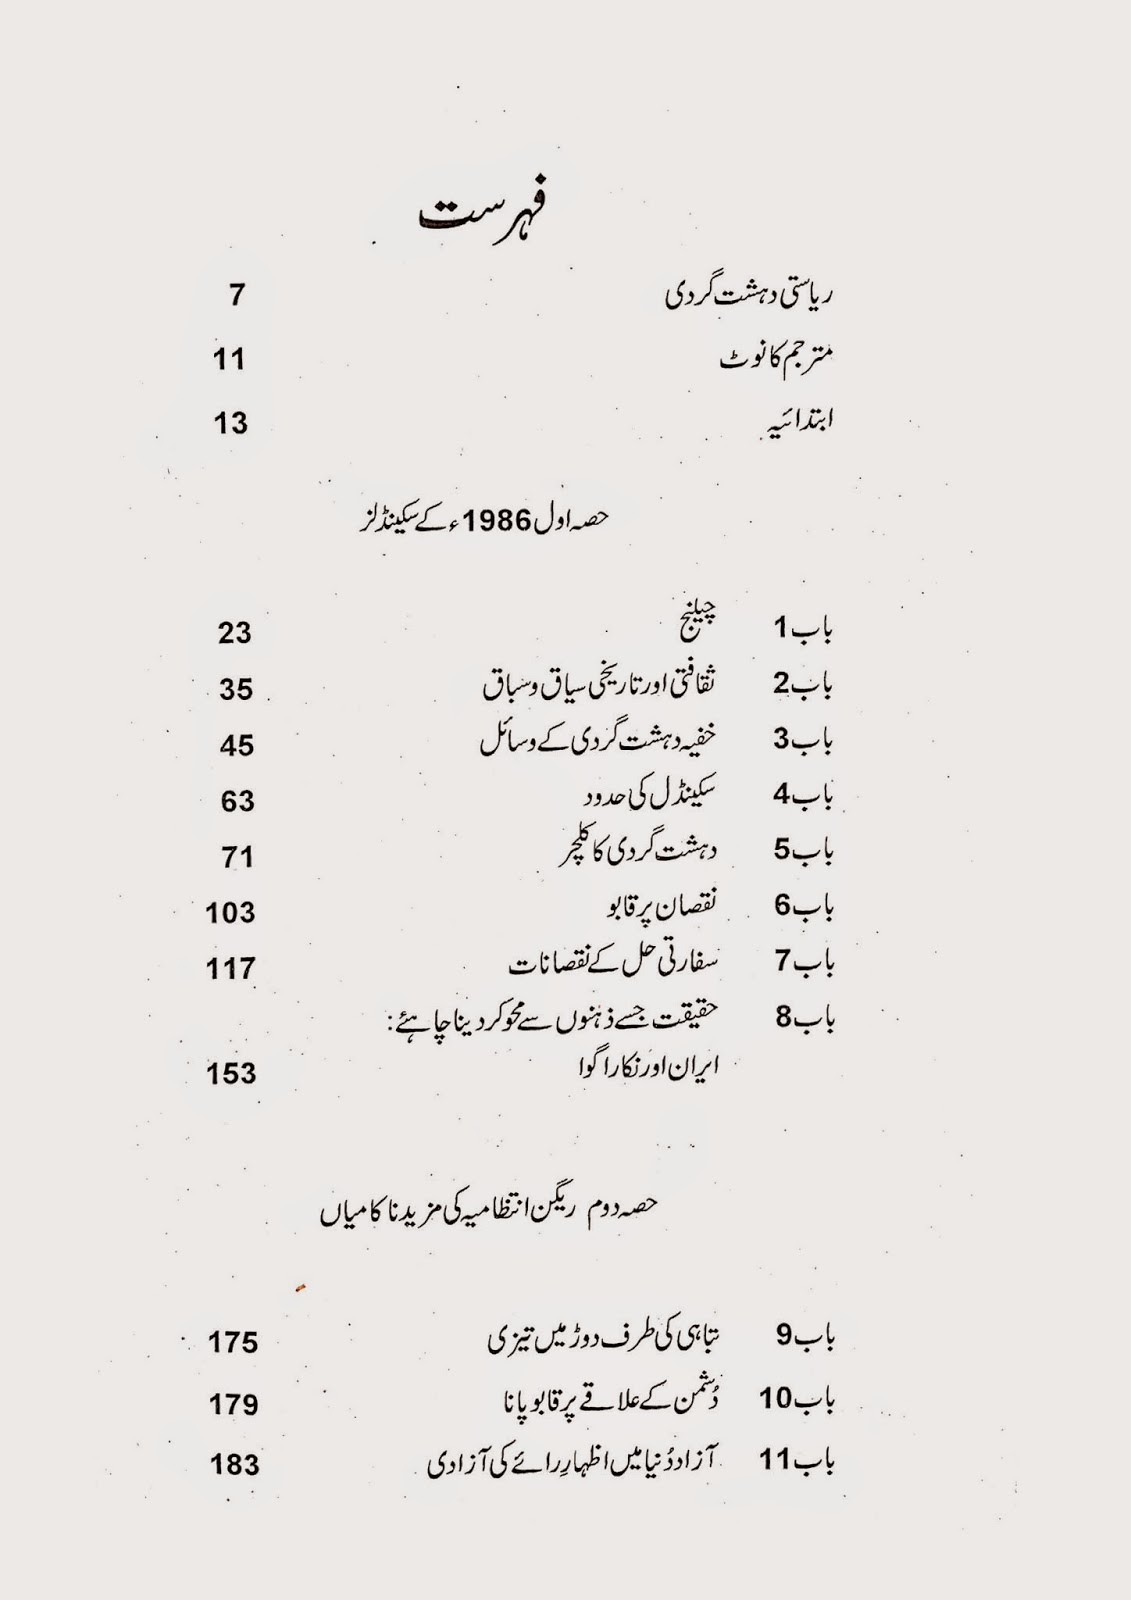 Contents: Riasati DehshatGardi By Noam Chomsky in Urdu